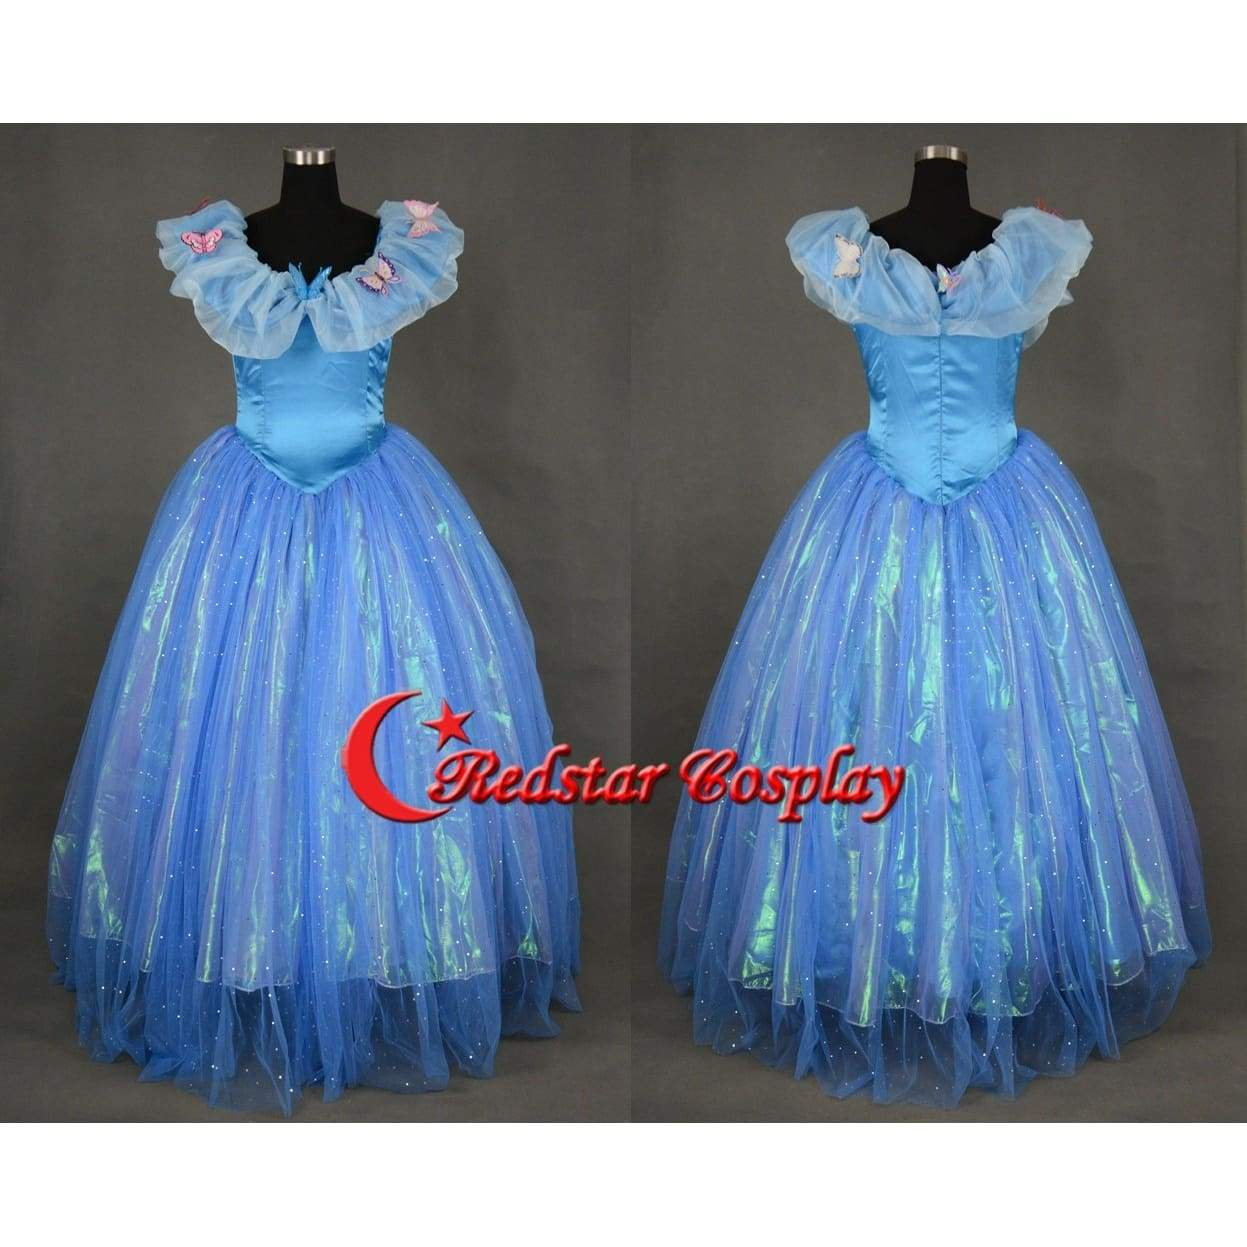 Cinderella Dress, Cinderella Cosplay Costume, Cinderella 2015 Cosplay Costume For Girls - SpiritCos